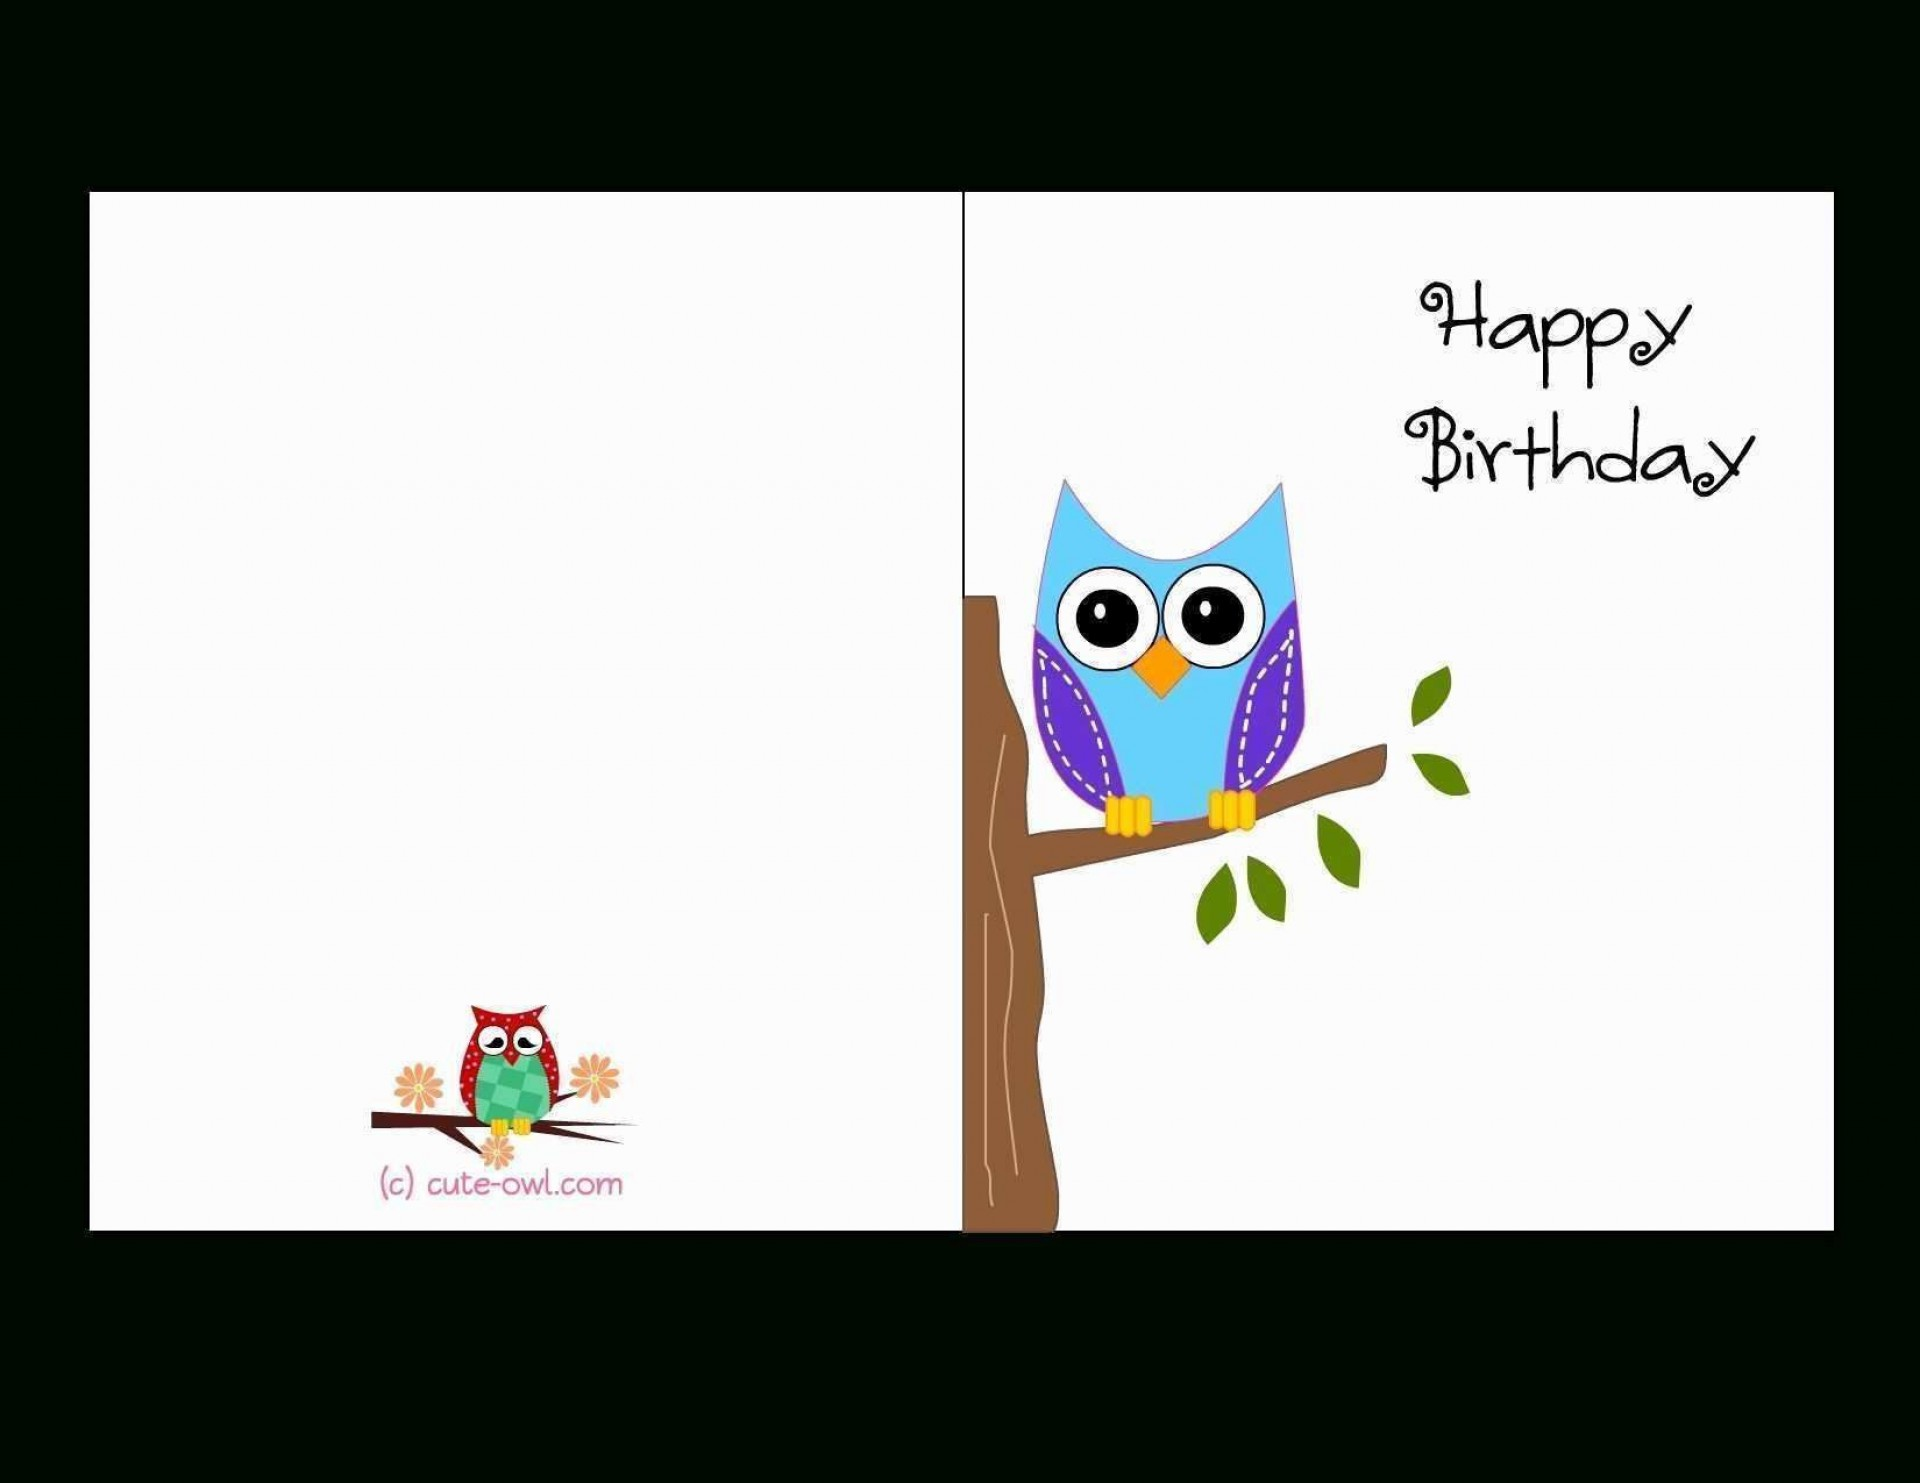 005 Incredible Blank Birthday Card Template For Word Picture  Free1920